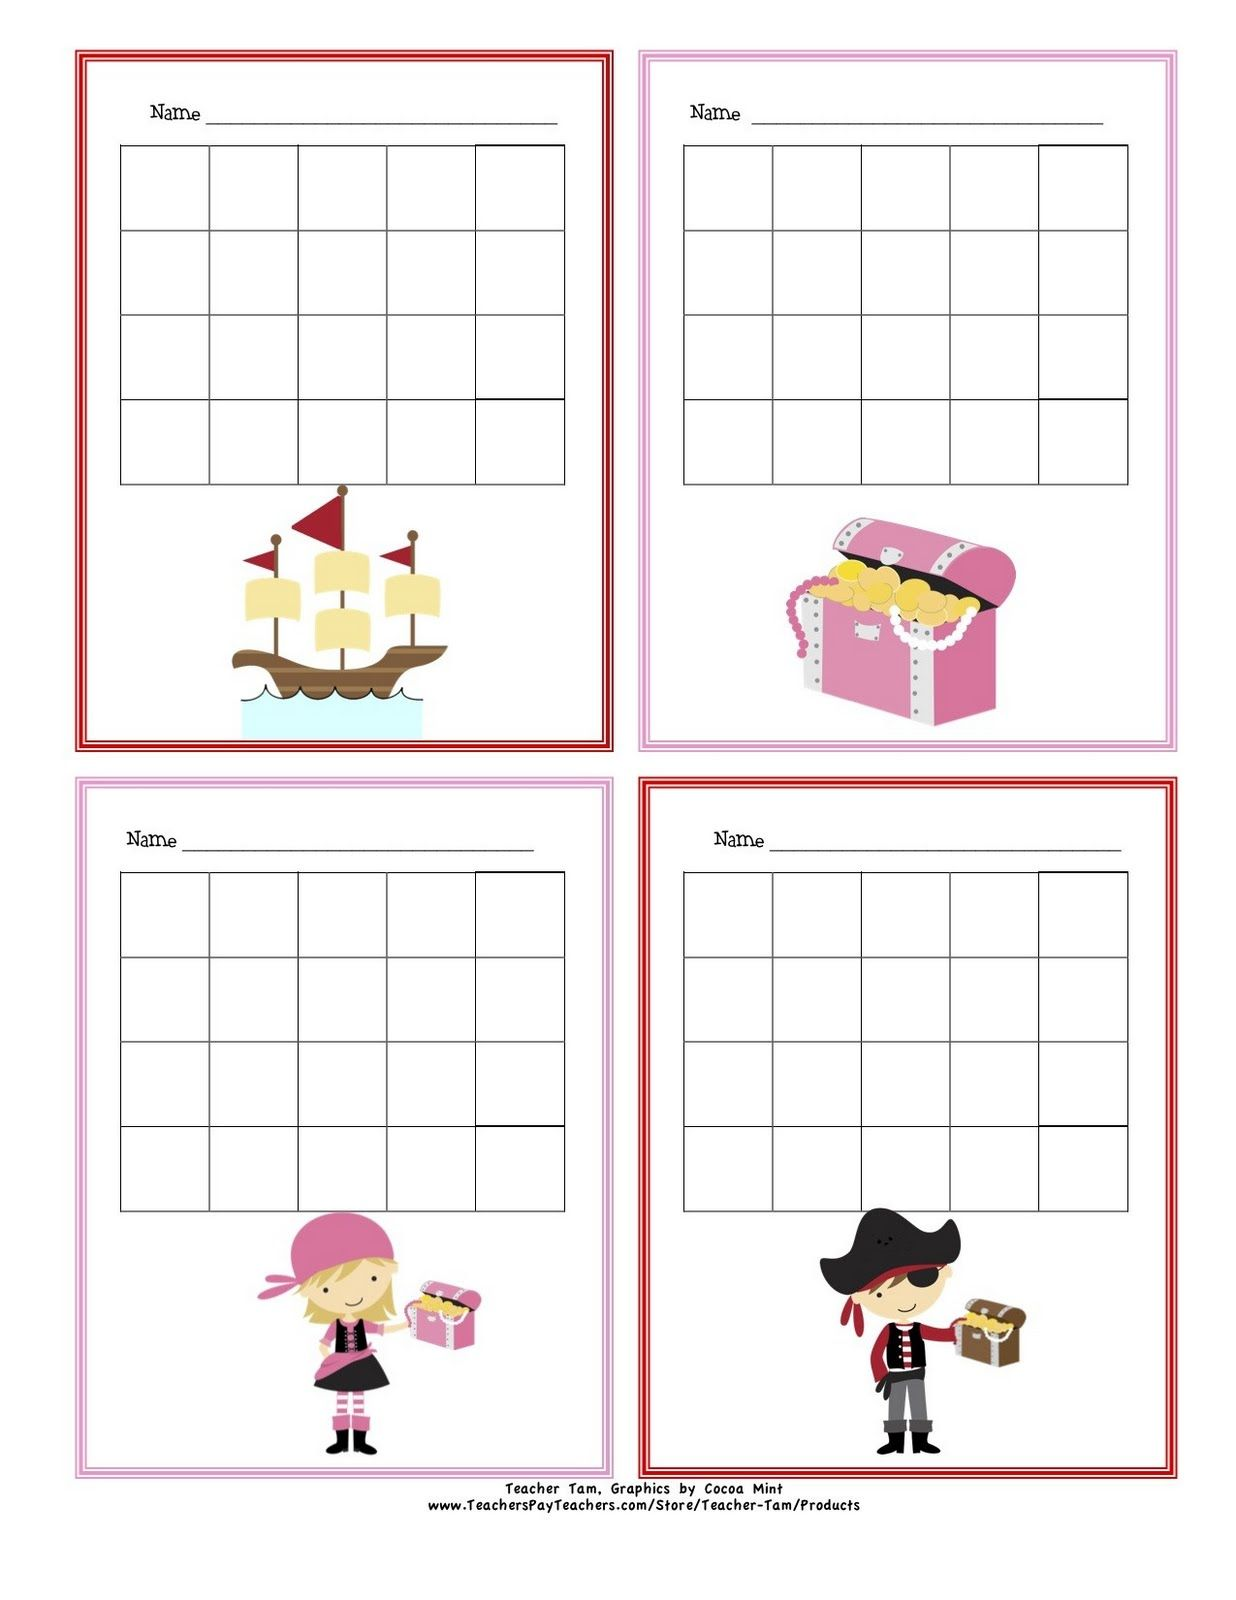 picture regarding Free Printable Sticker Chart identified as free of charge printable sticker charts jungle topic - Google Seem